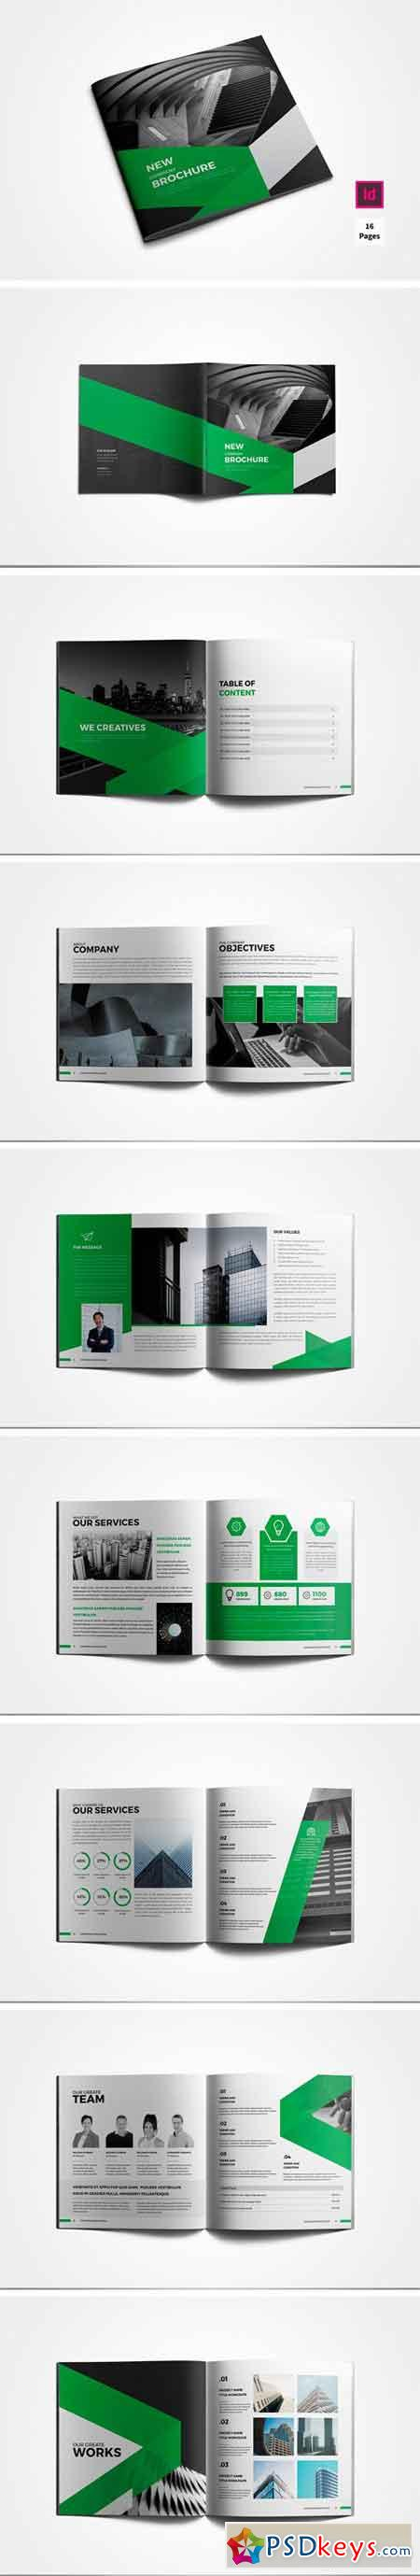 Square Company Profile Brochure 2067776